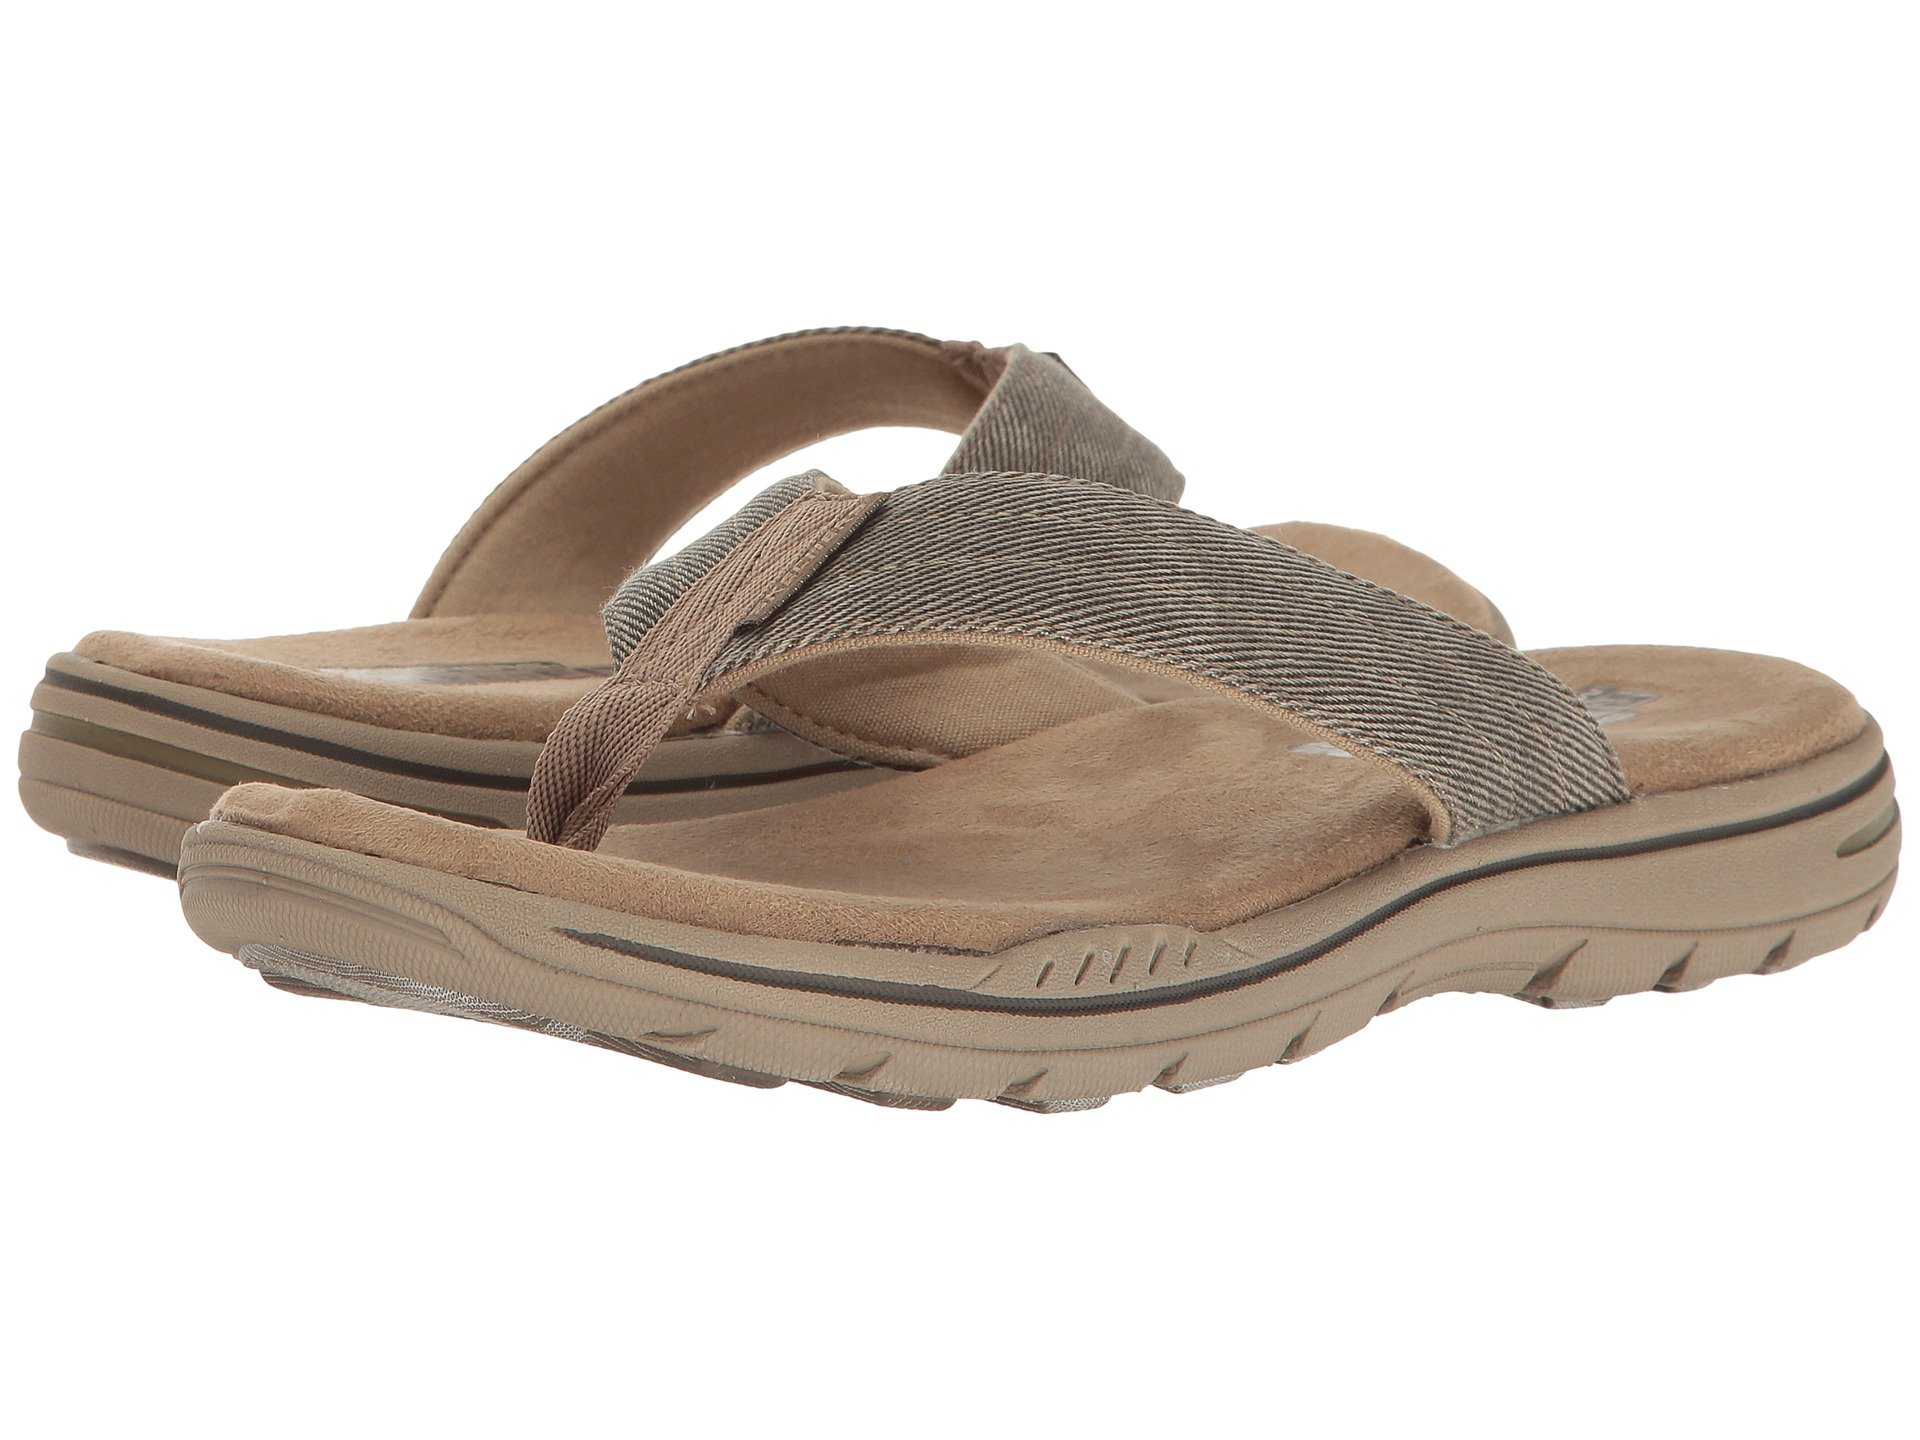 SKECHERS SKECHERS Relaxed Fit®: Evented - Rosen